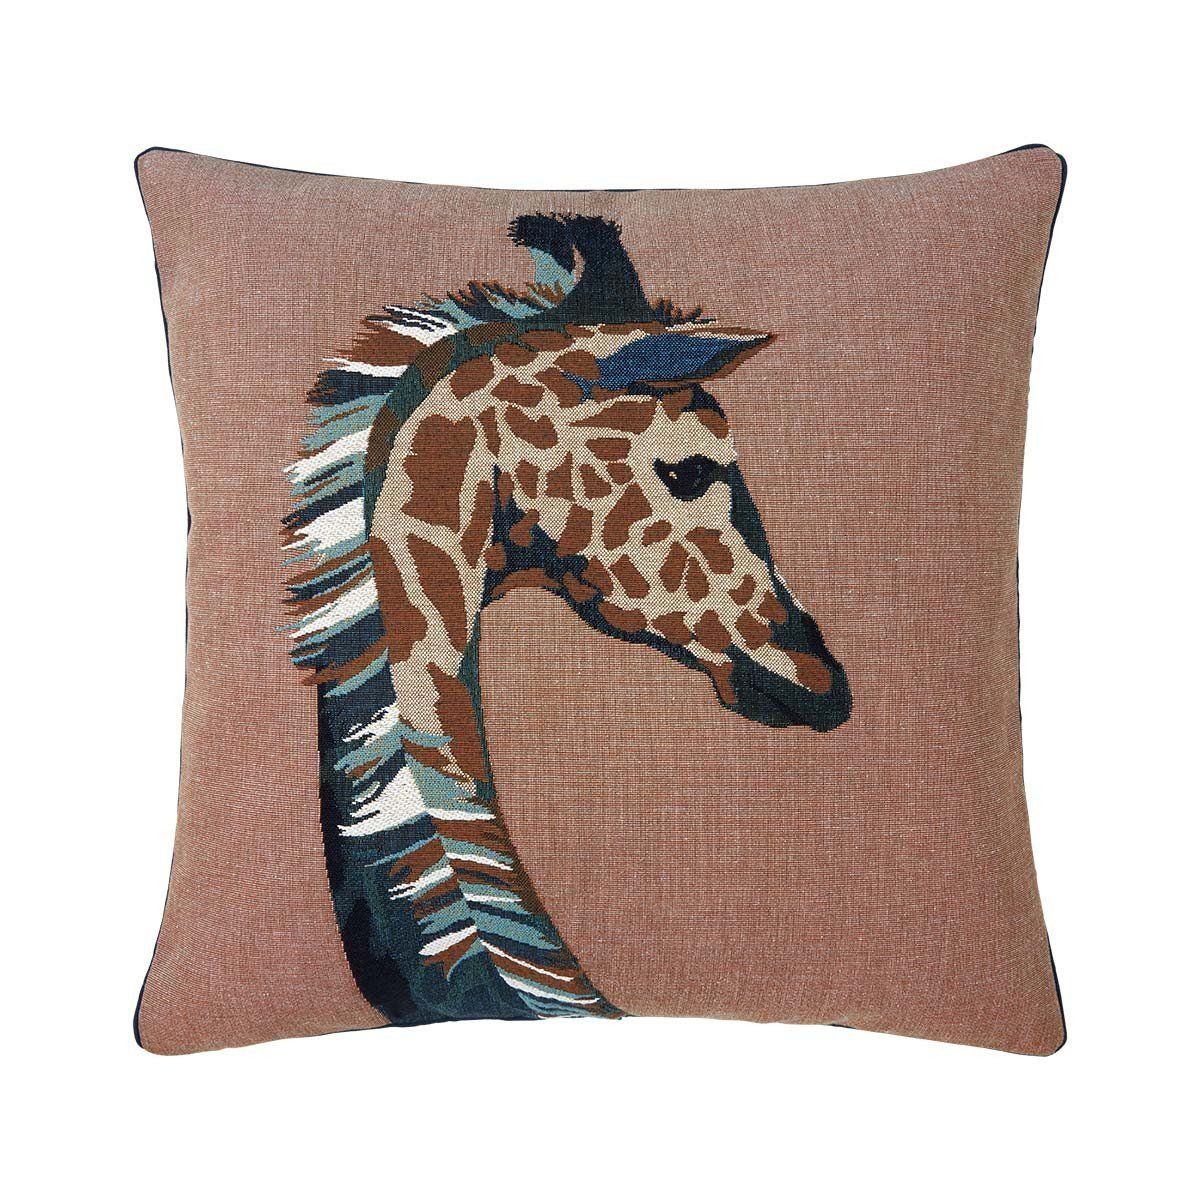 Harriet Cedre Decorative Pillow by Iosis